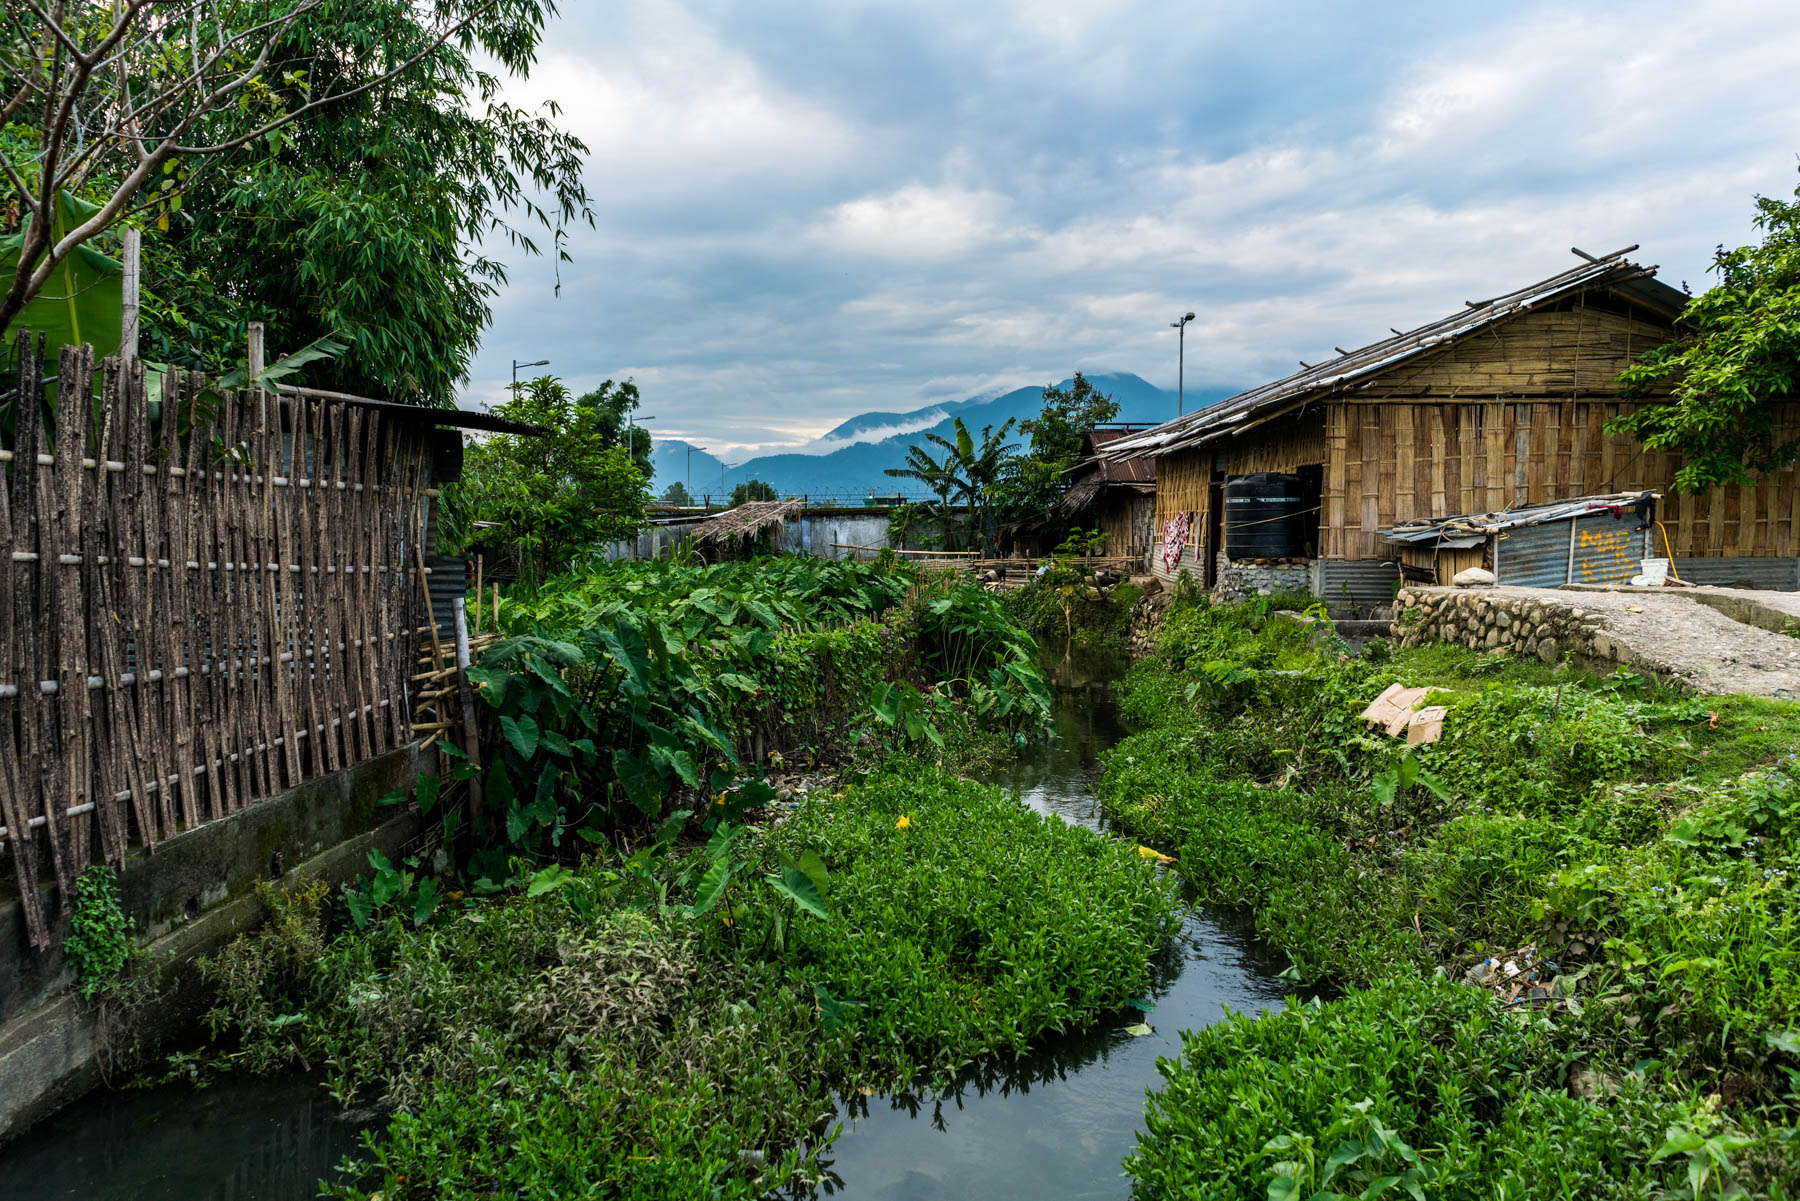 Backpacking in Arunachal Pradesh, India - Side streets of Pasighat - Lost With Purpose